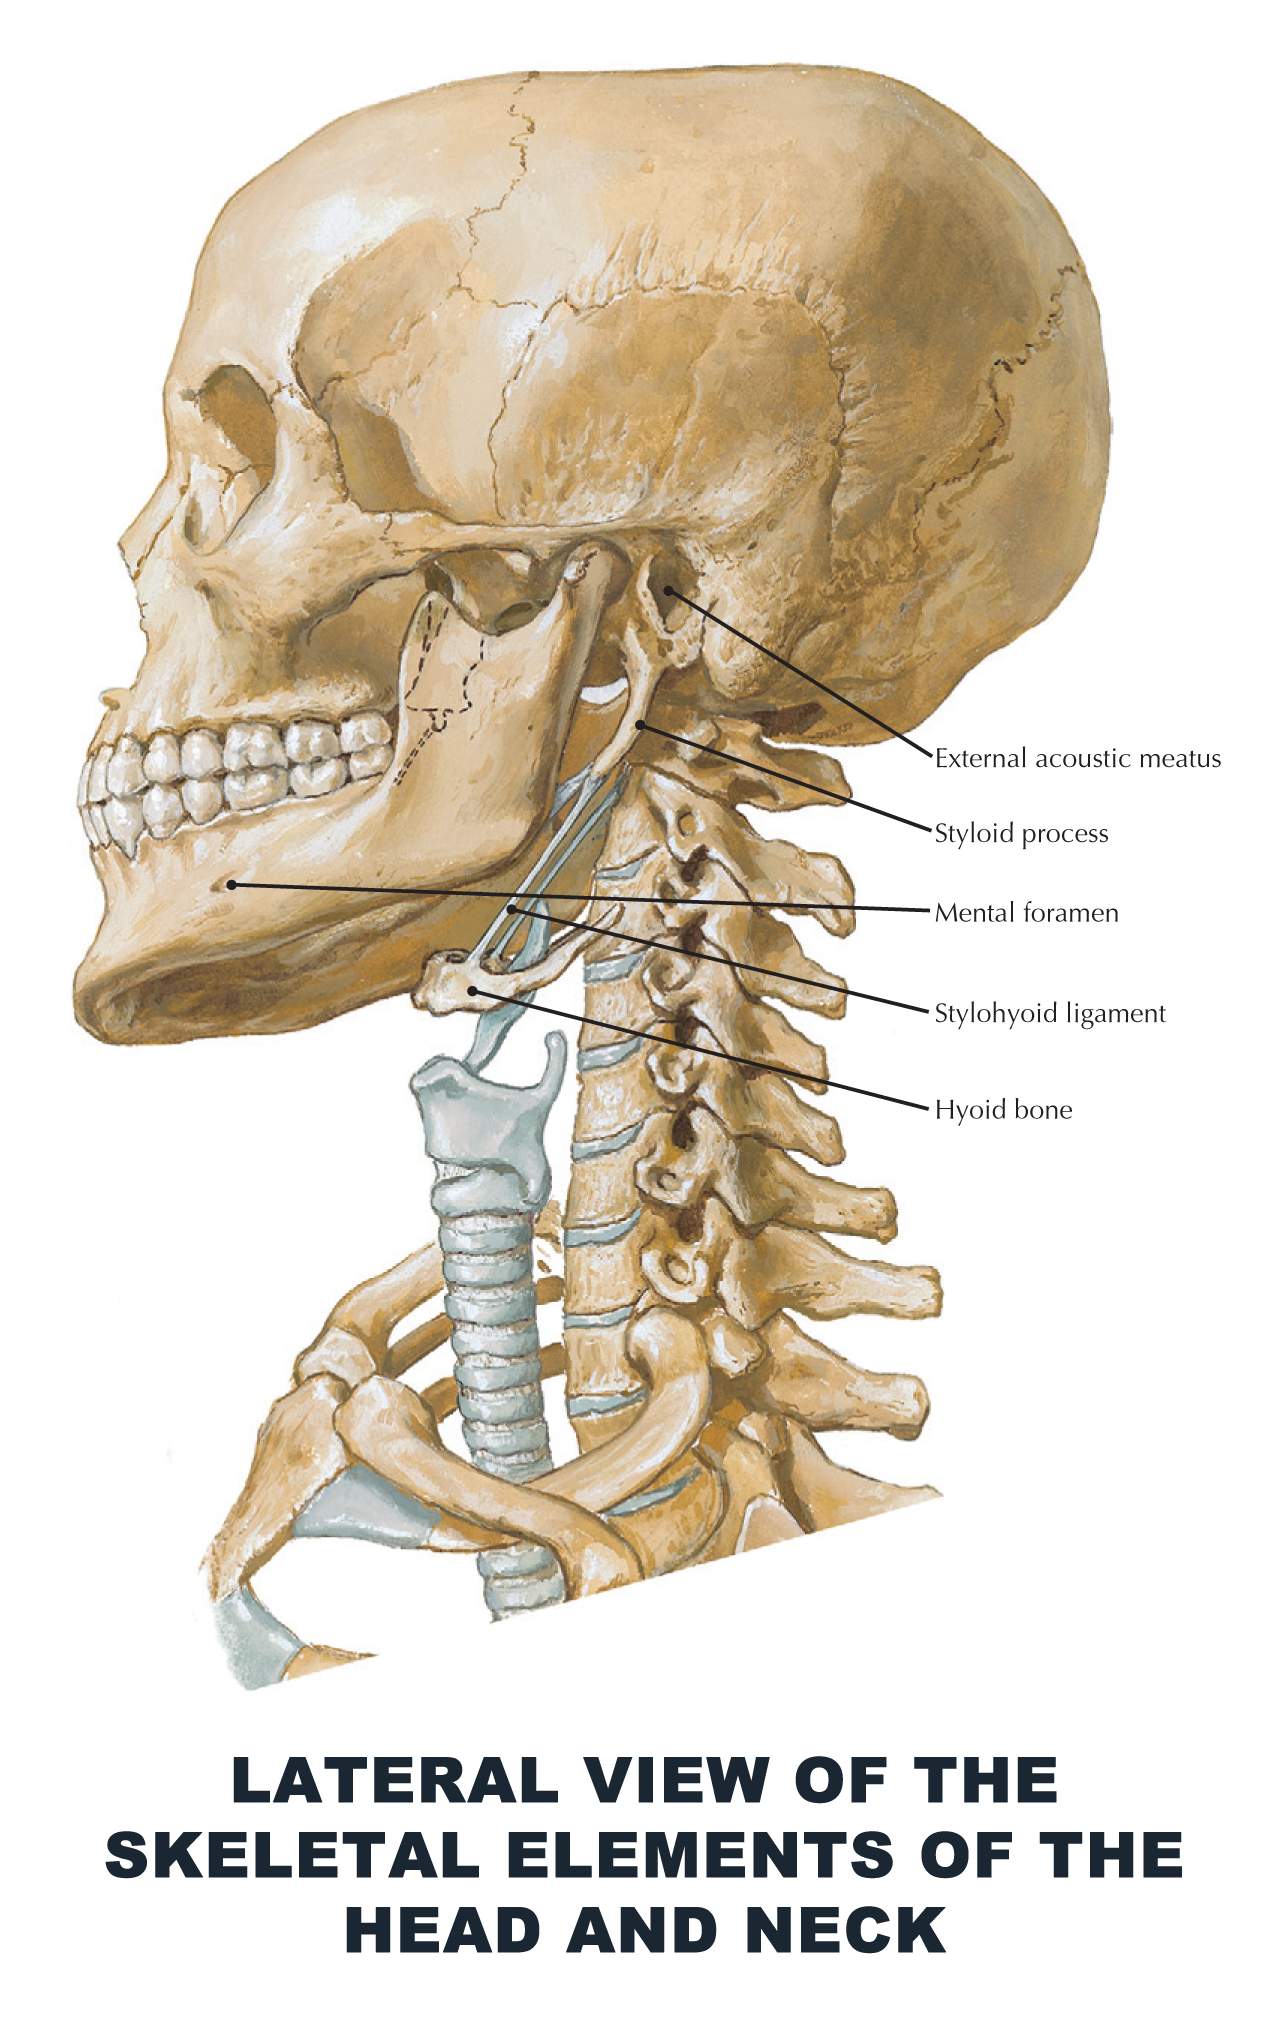 Lateral View Of The Skeletal Elements Of The Head And Neck